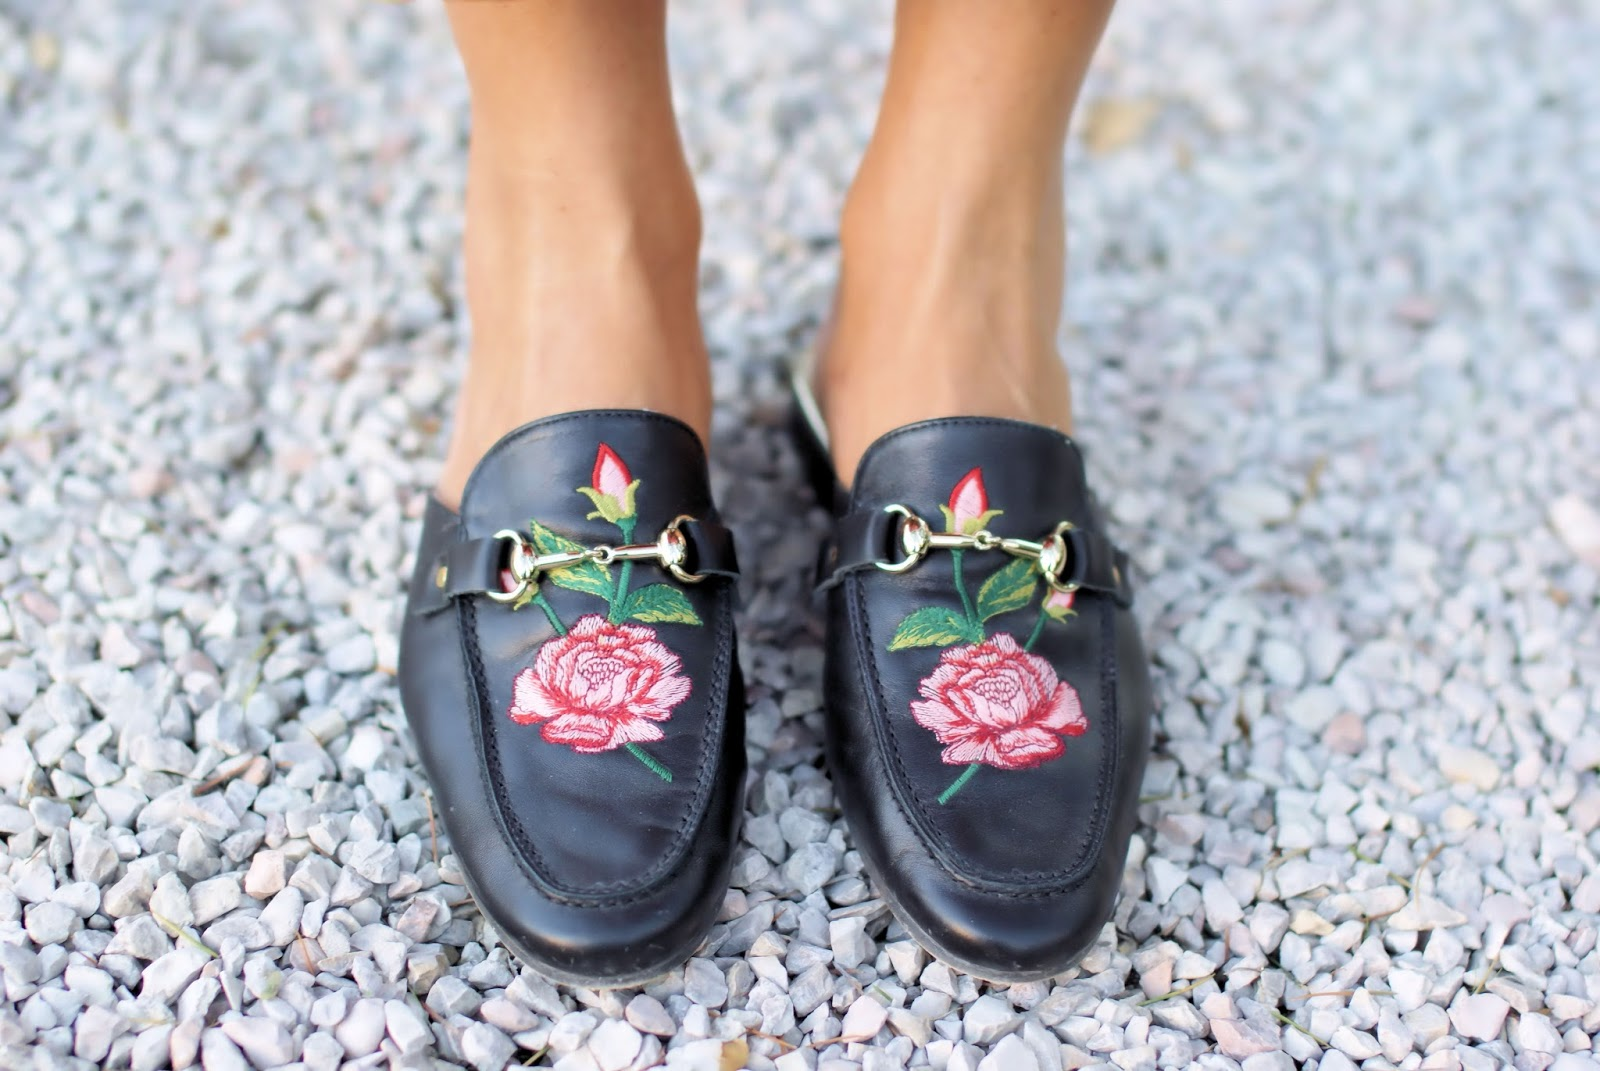 Gucci lookalike slipper mules on Fashion and Cookies fashion blog, fashion blogger style